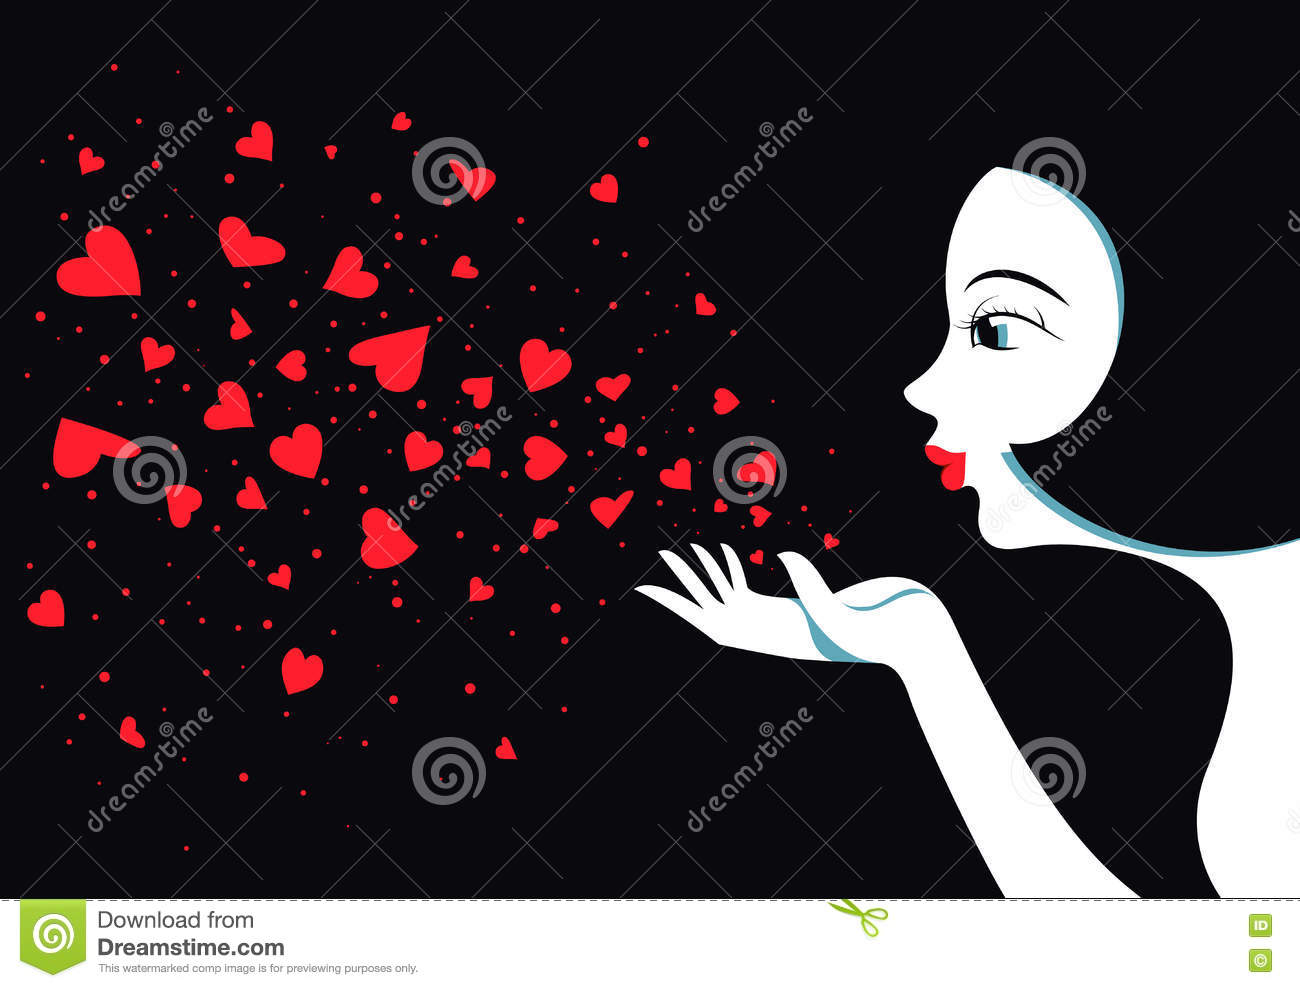 Cute Girl Blows With Hands Hearts Air Kiss Stock Vector